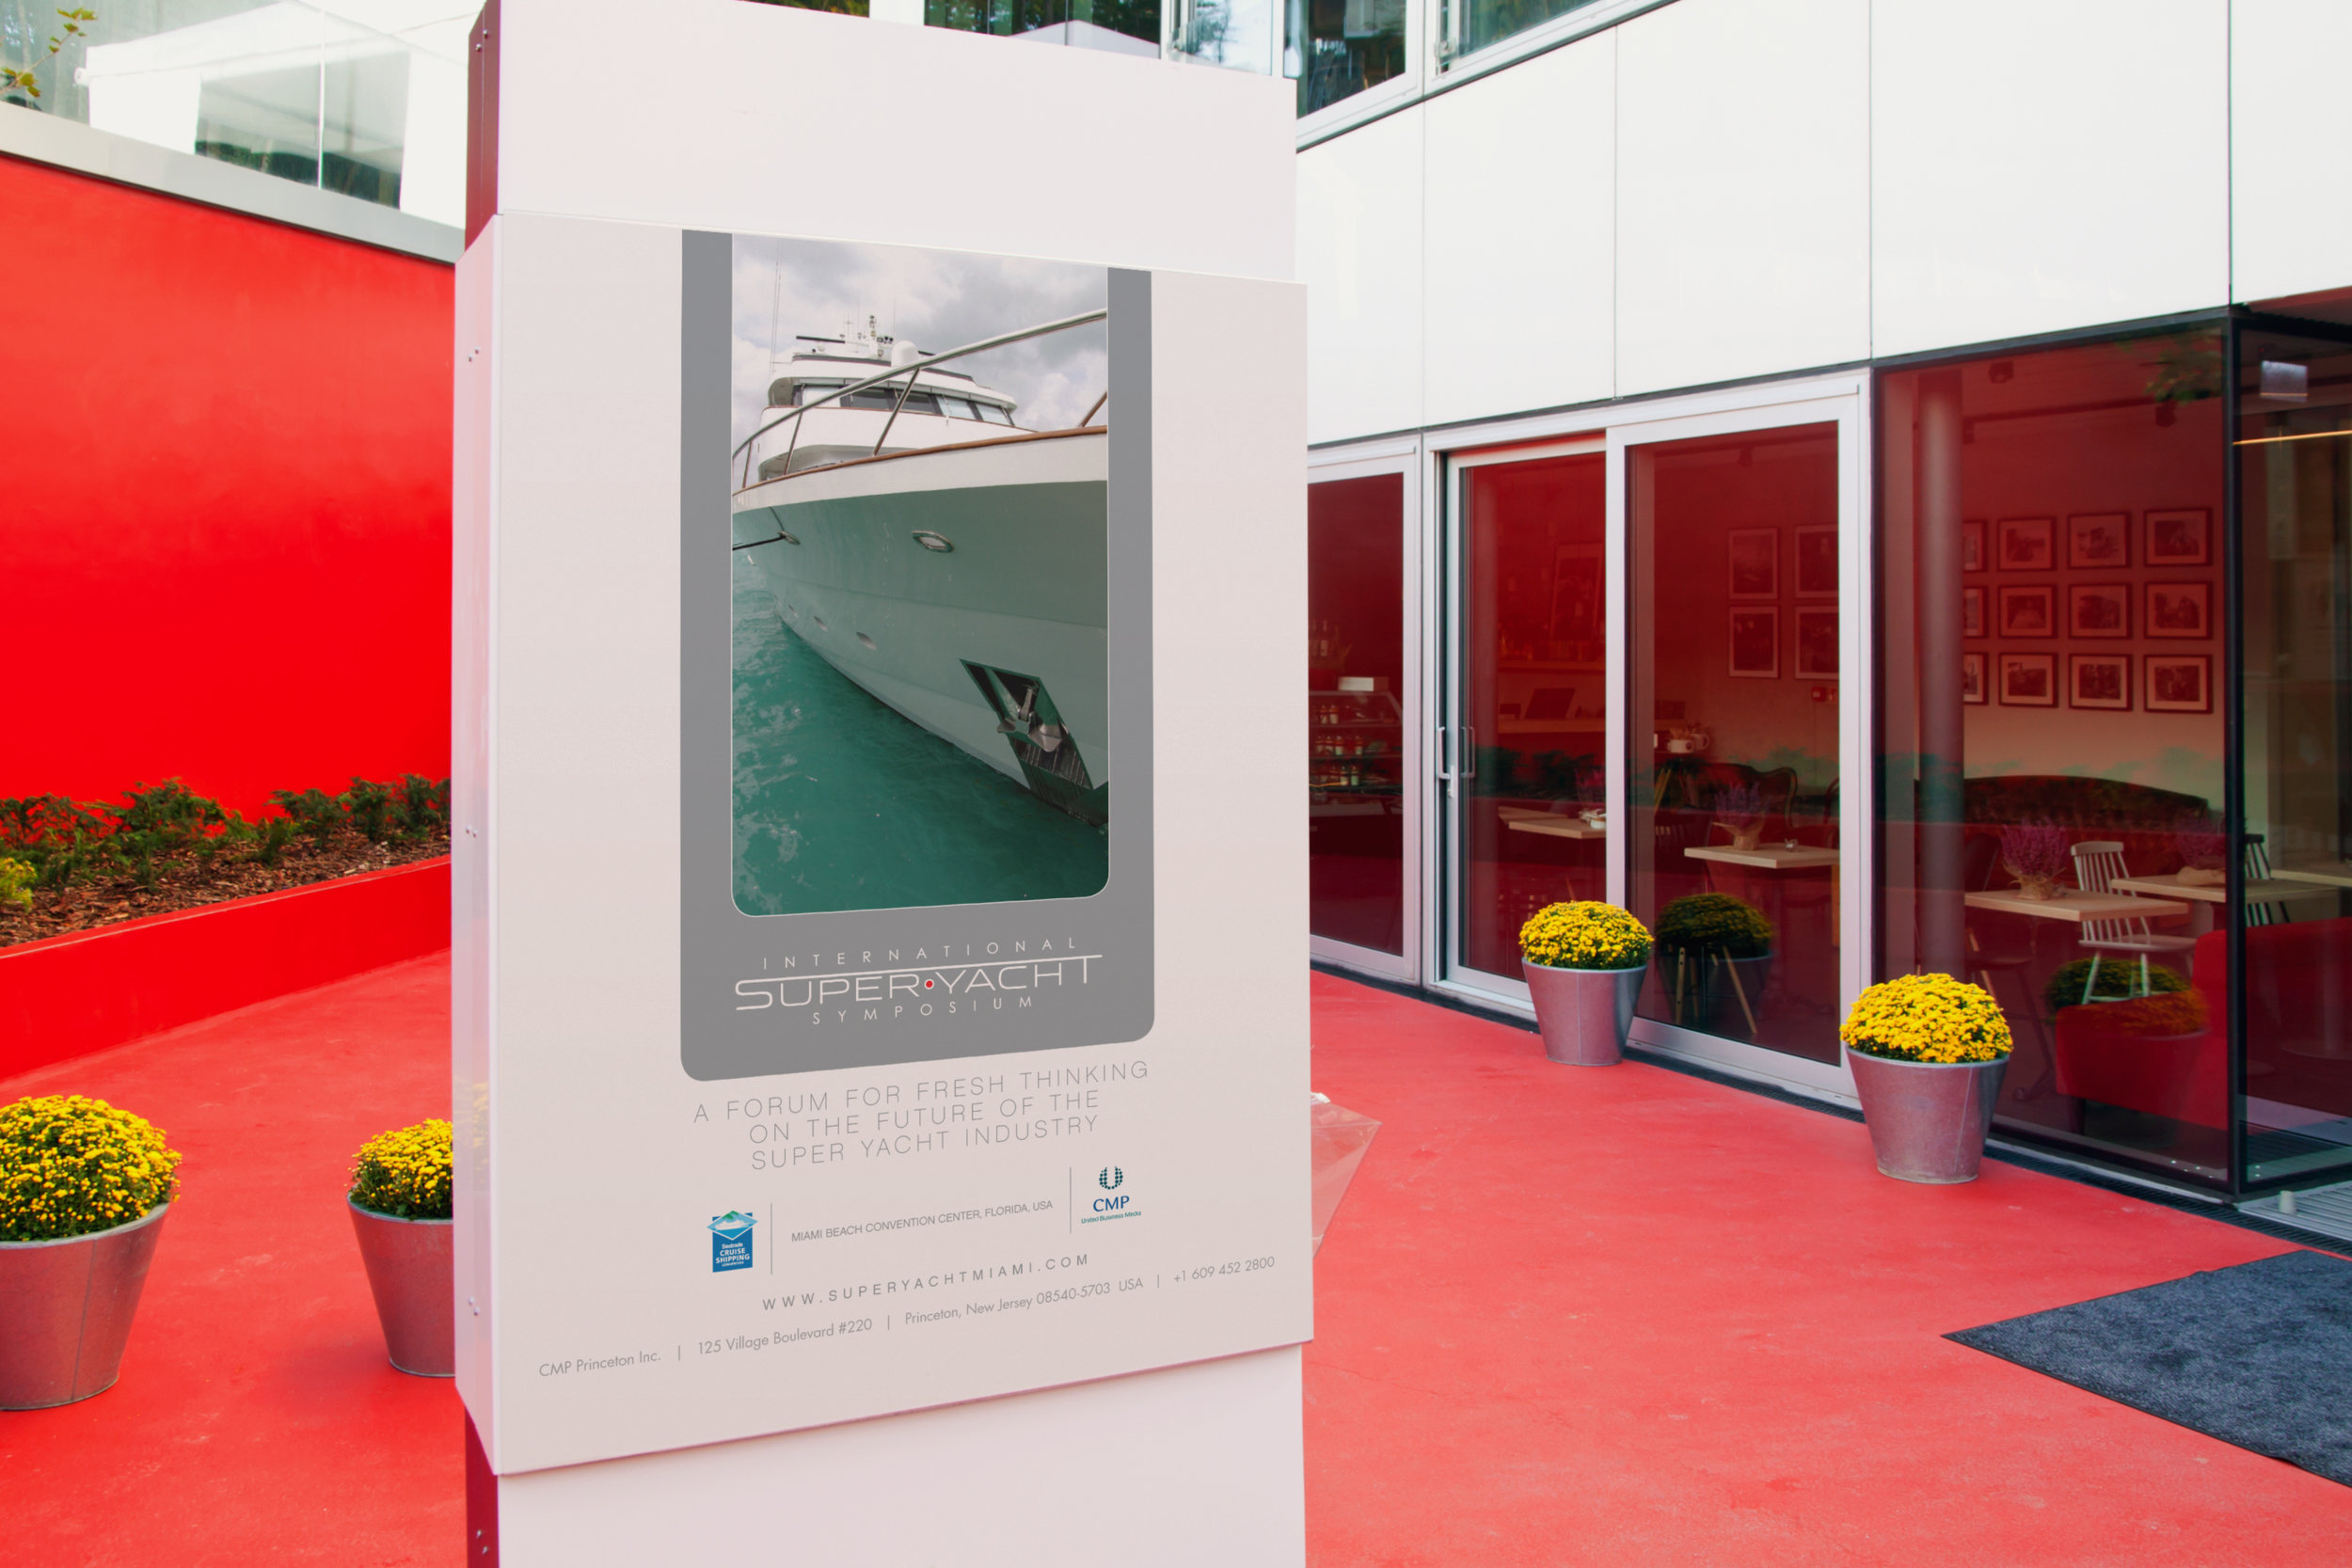 SuperYacht Symposium Poste copy.jpg